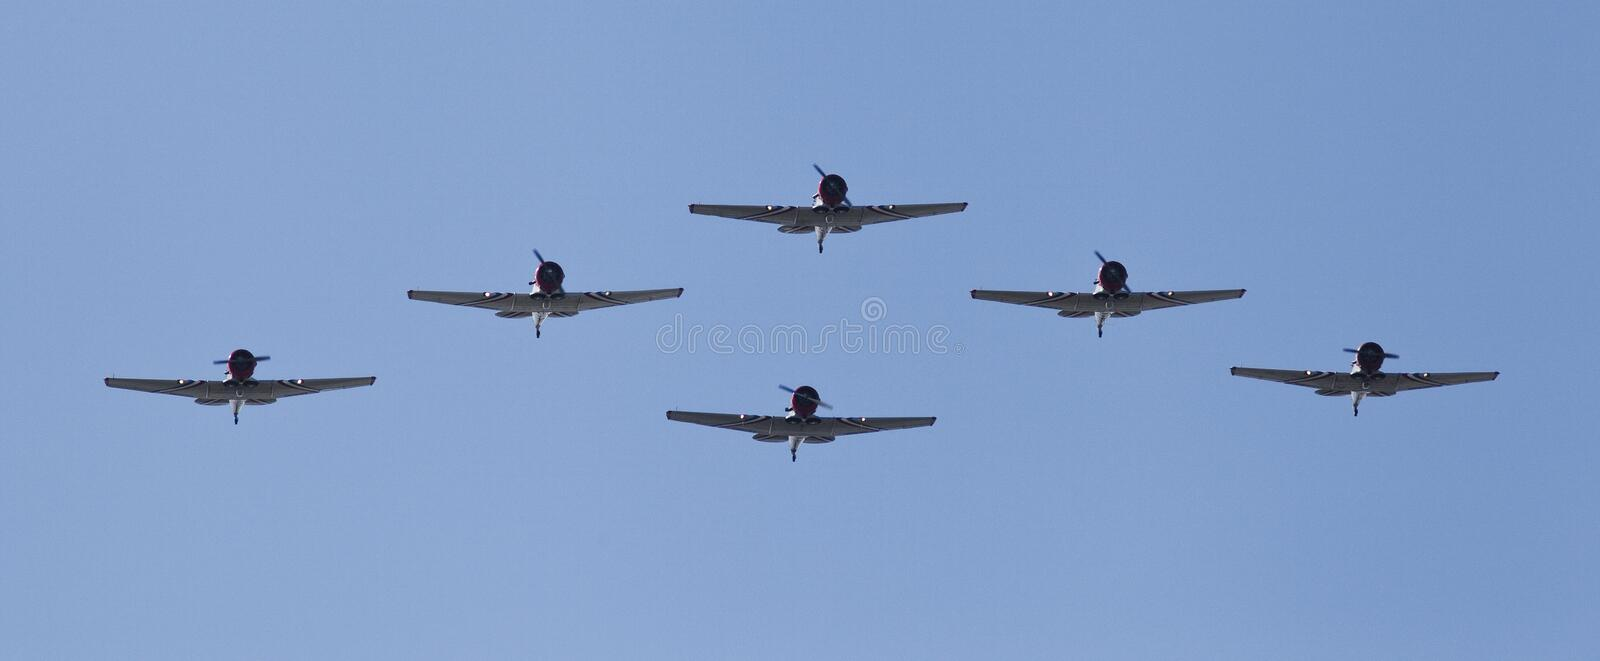 Download Airplanes in formation stock photo. Image of airshow - 22701494